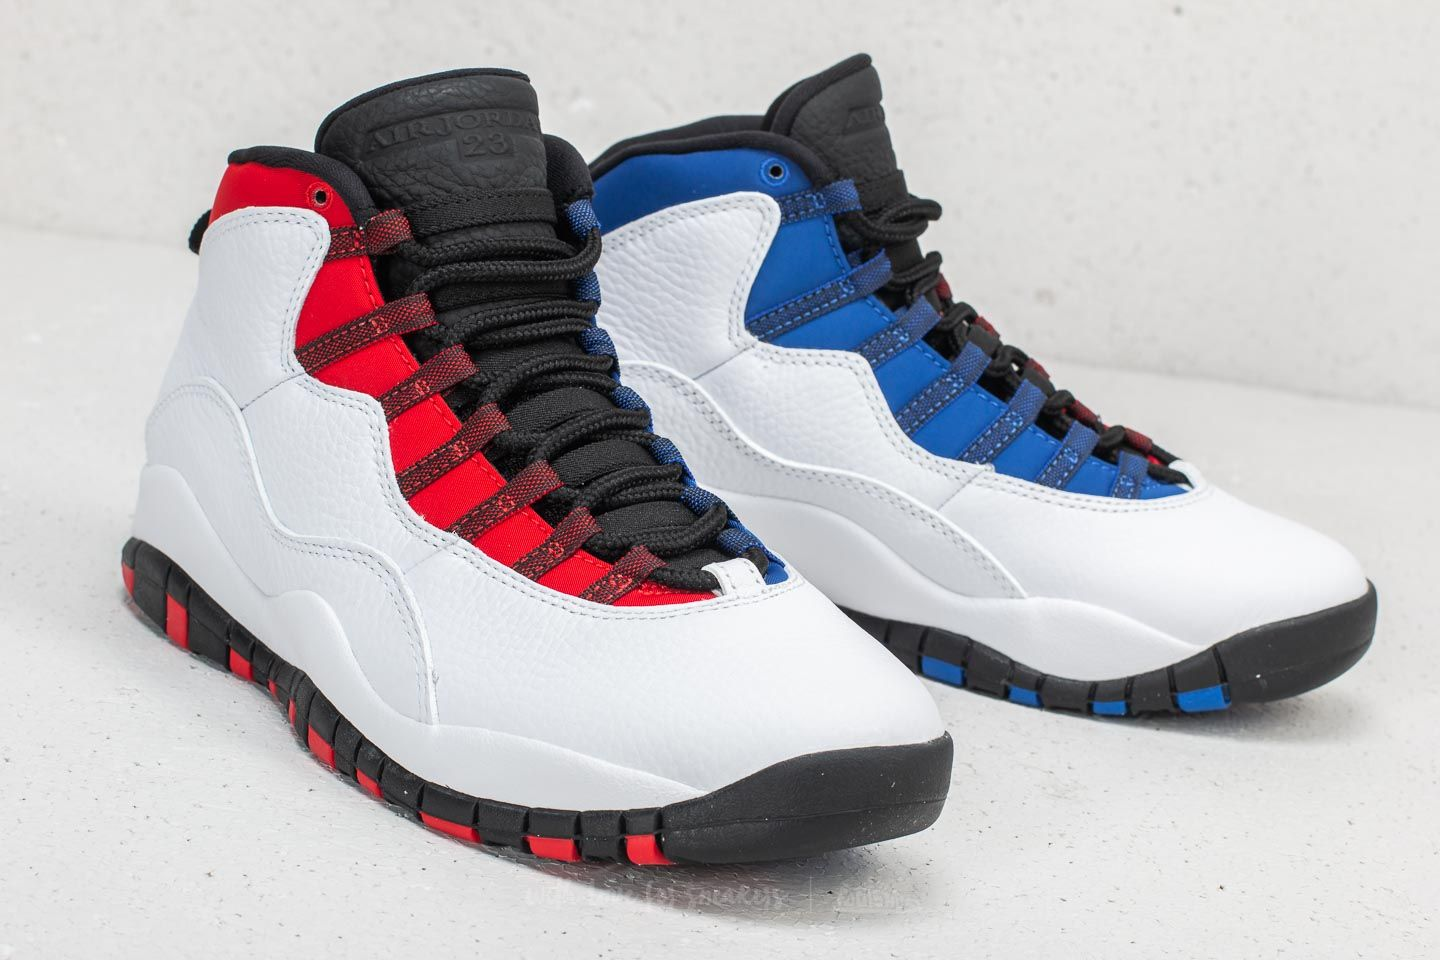 wholesale dealer c900d 1744f Air Jordan 10 Retro White/ Black-University Red | Footshop